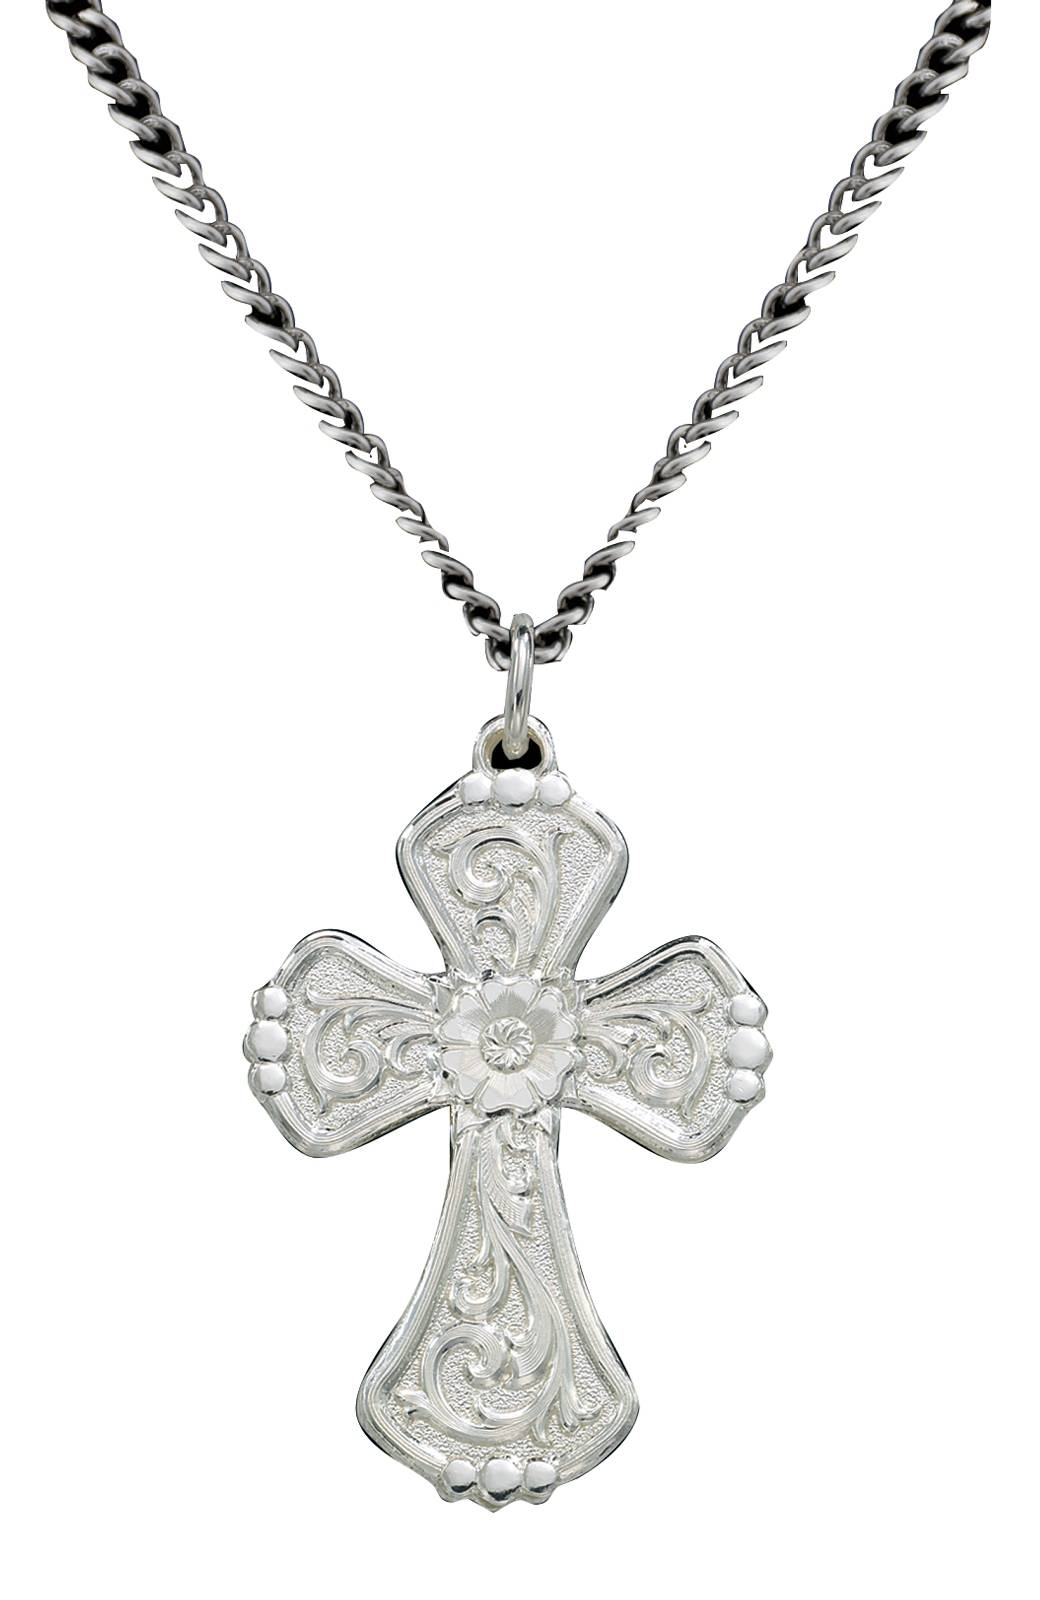 Montana Silversmiths Reversible Shiny Or Antiqued Silver Filigree Cross Pendant Necklace